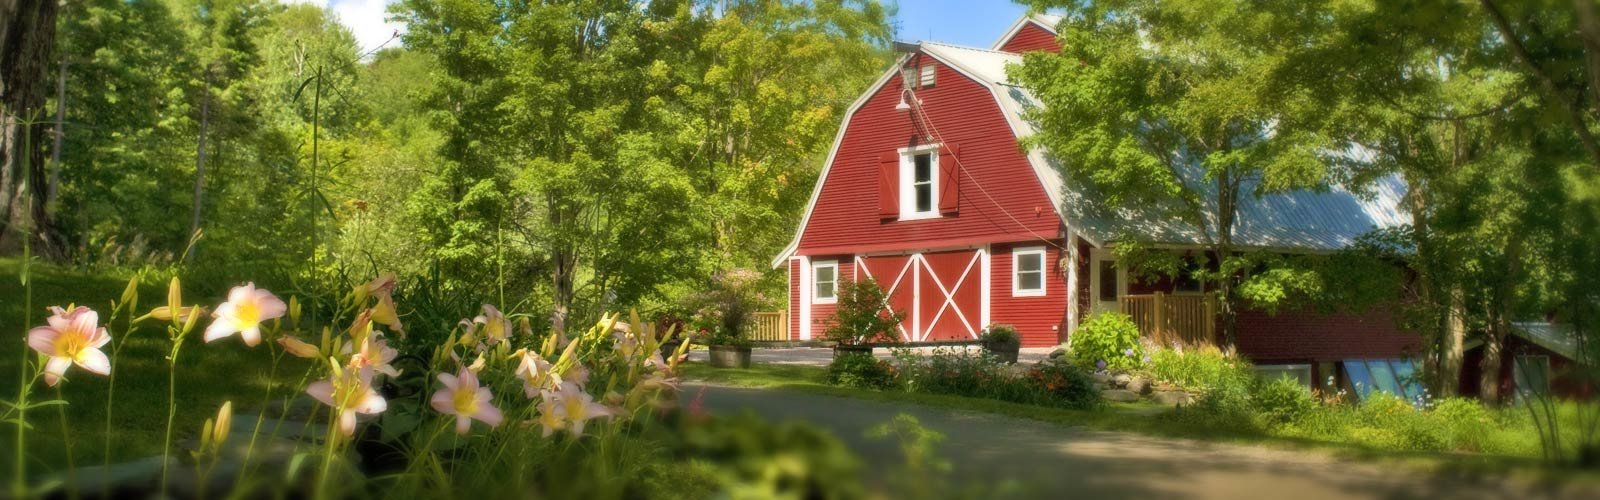 The Handsome Red Barn